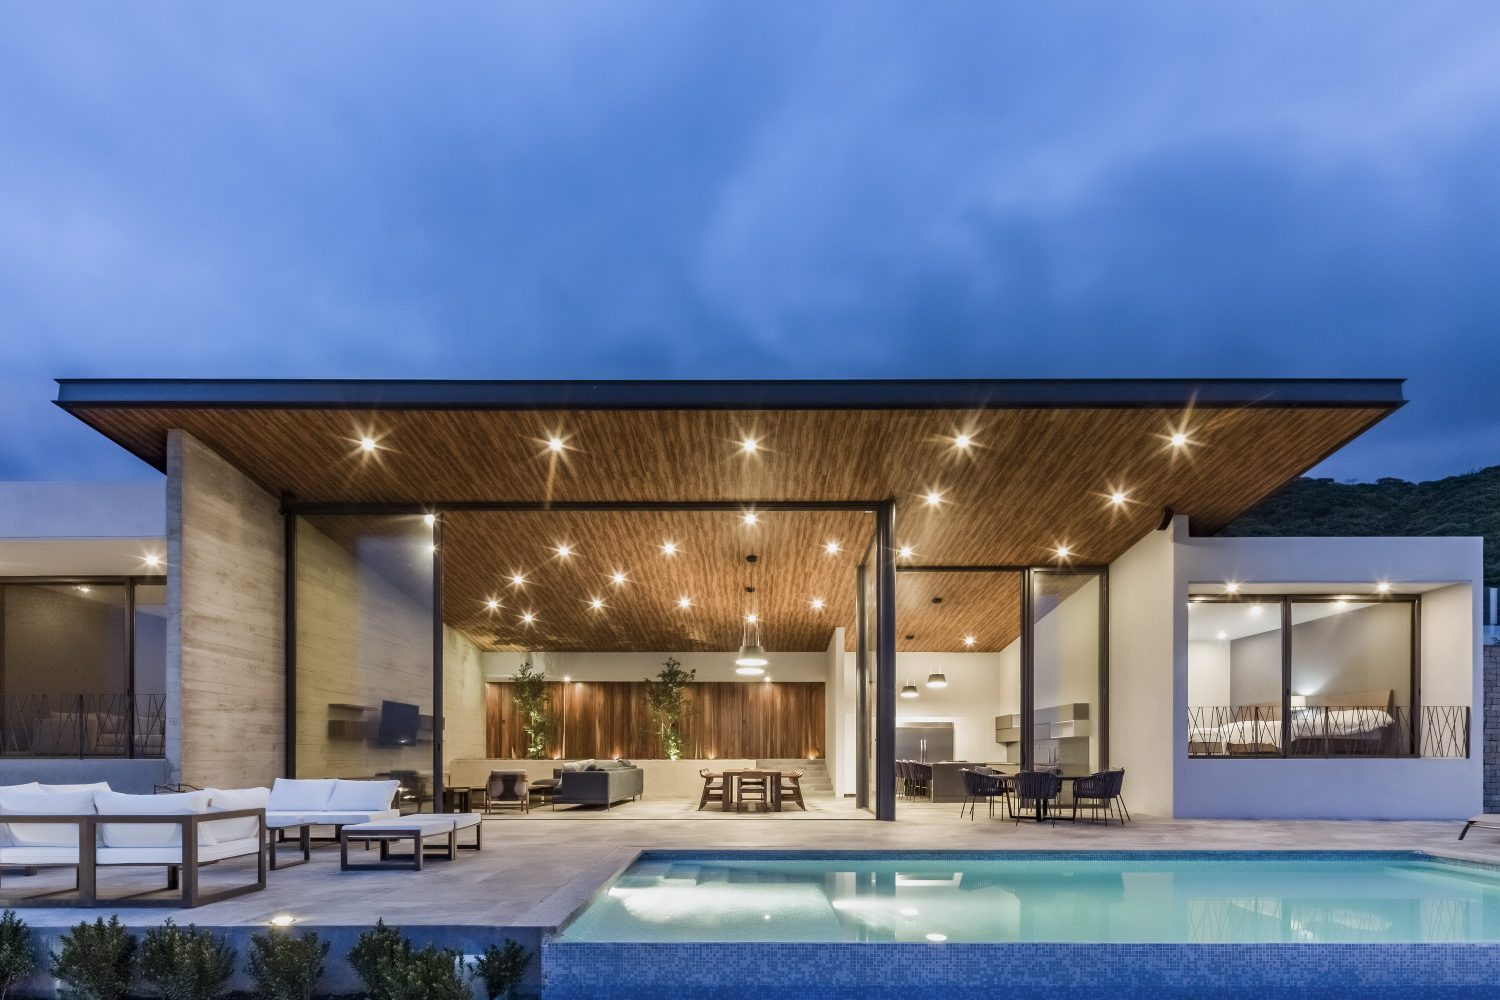 Lake House by FARQ Arquitectos